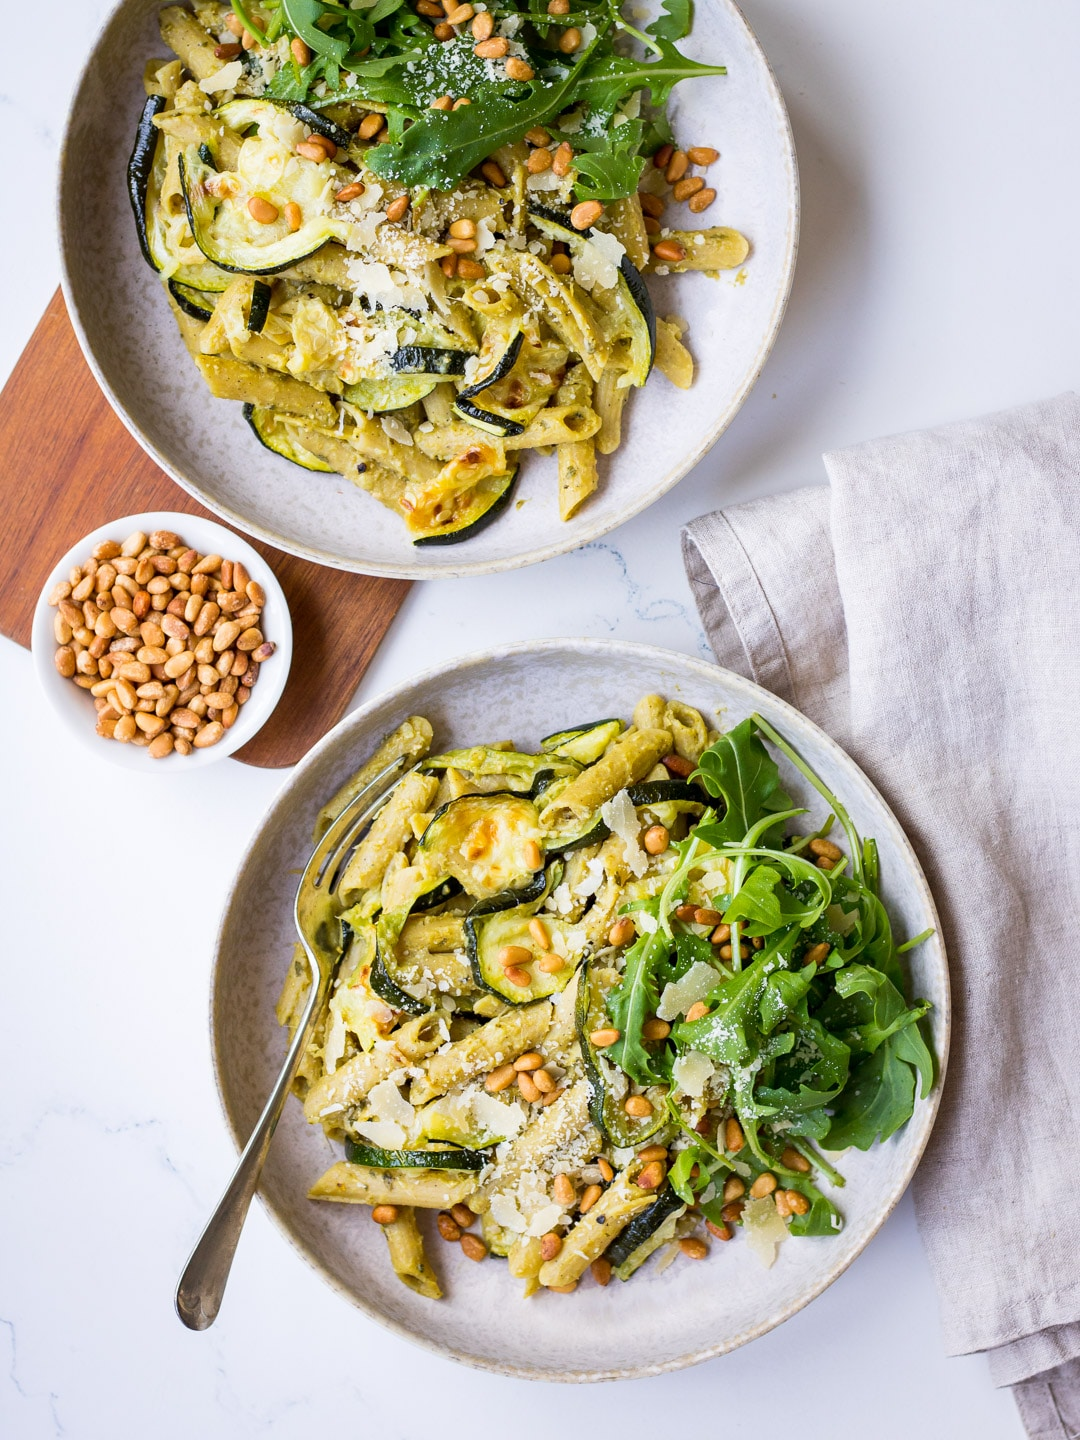 Pesto Pulse Pasta with Roasted Zucchini served in a grey ceramic bowl, with pine nuts